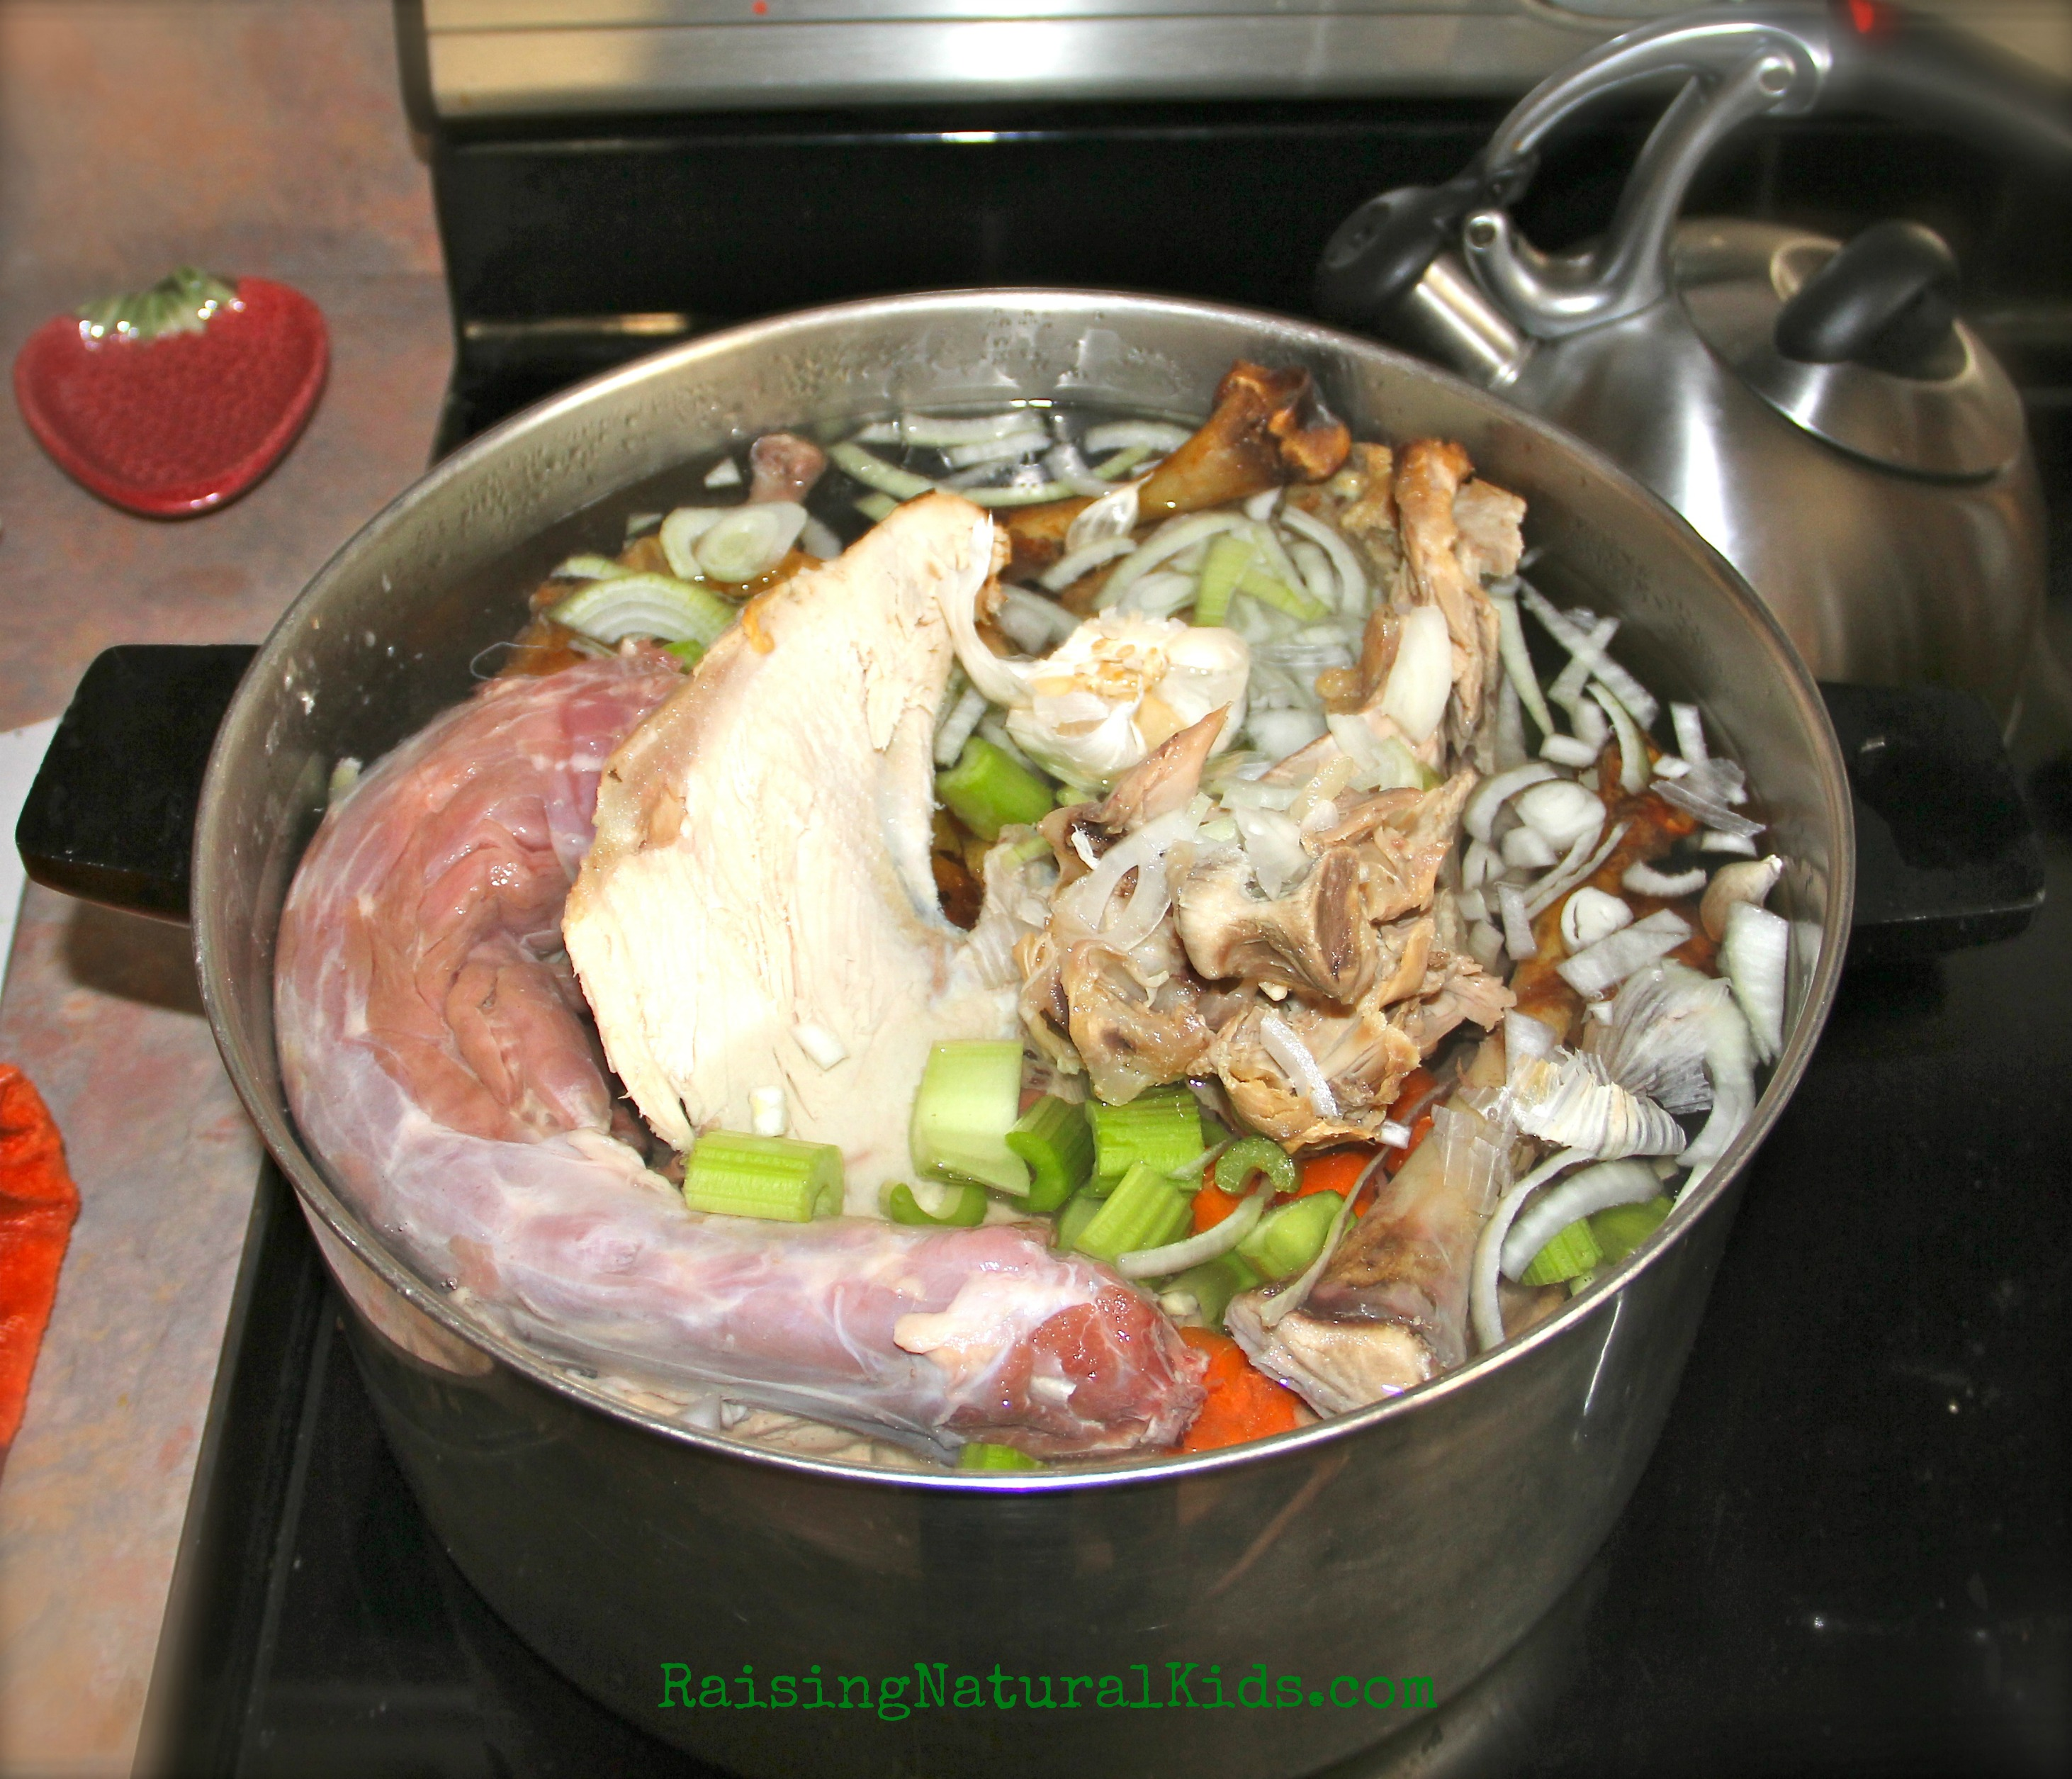 If you look closely, you'll see garlic and onion skins in with the turkey bone broth.